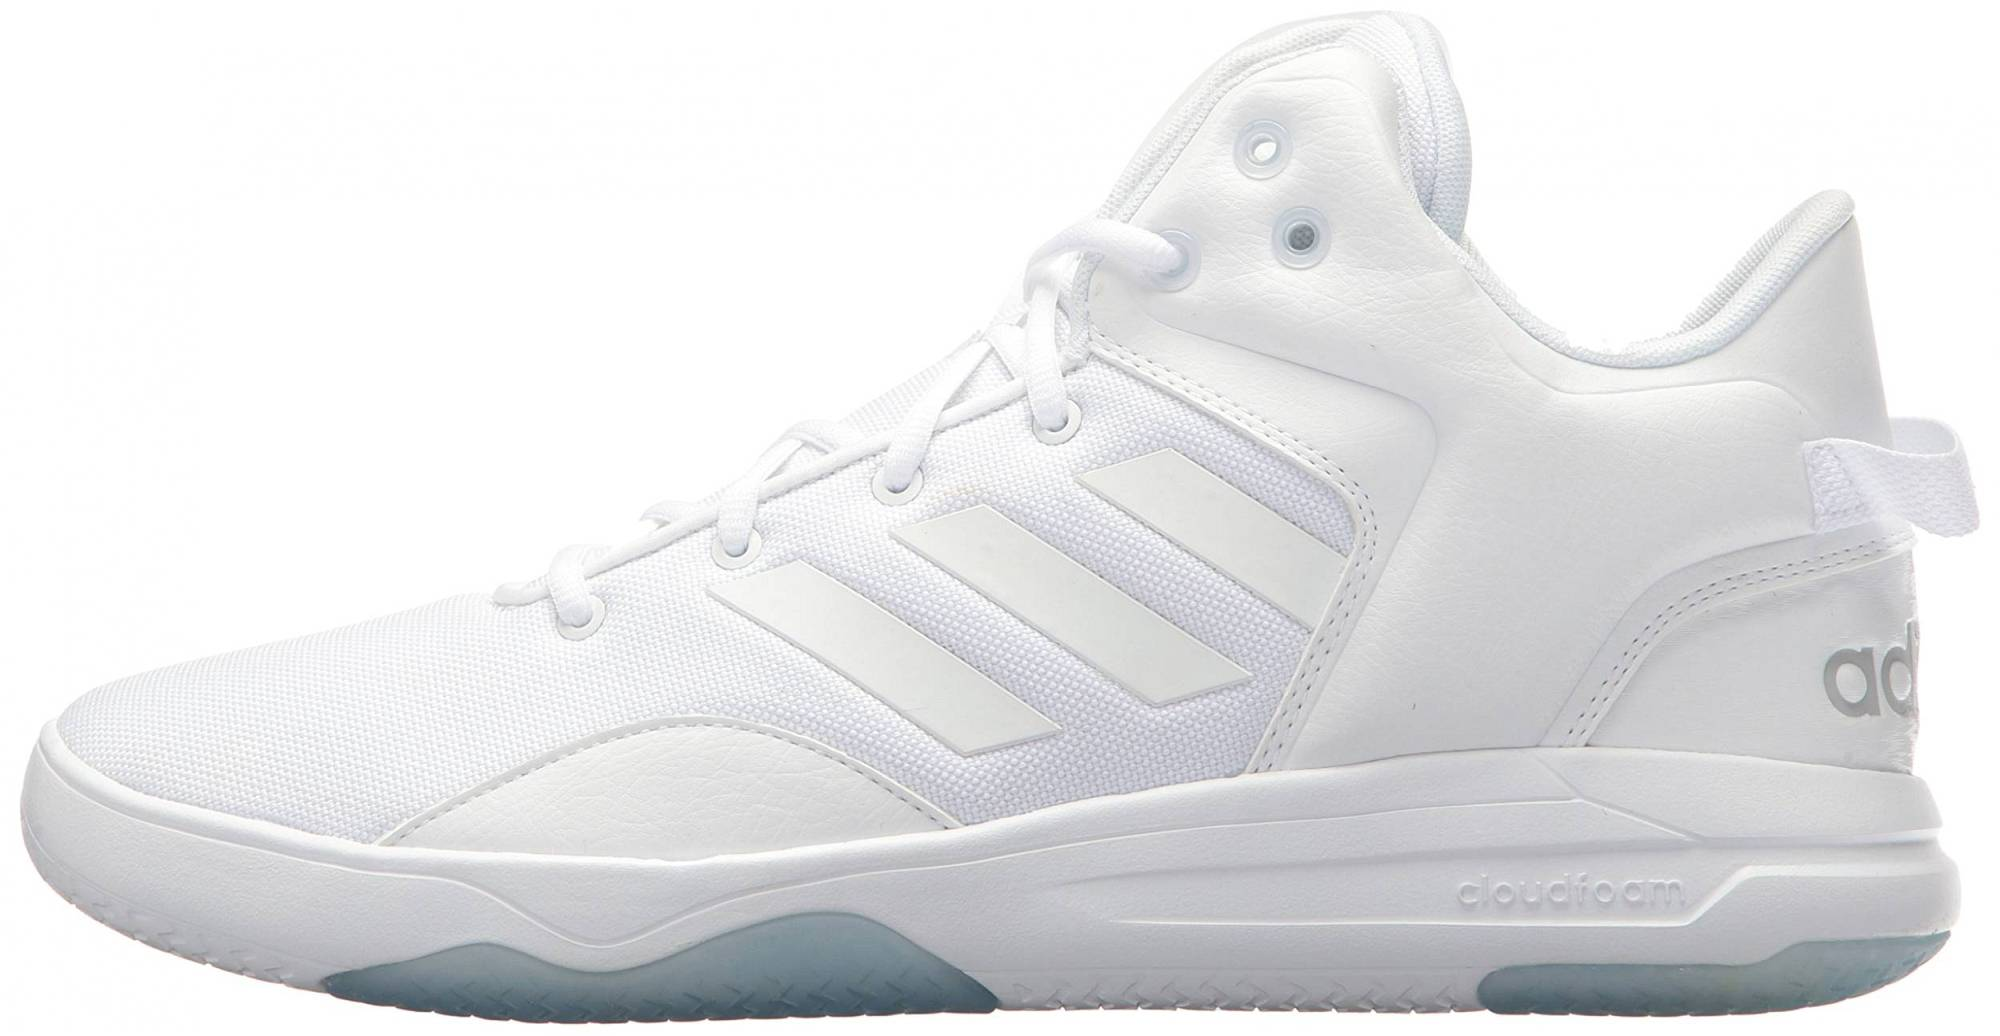 Adidas Cloudfoam Revival Mid – Shoes Reviews & Reasons To Buy